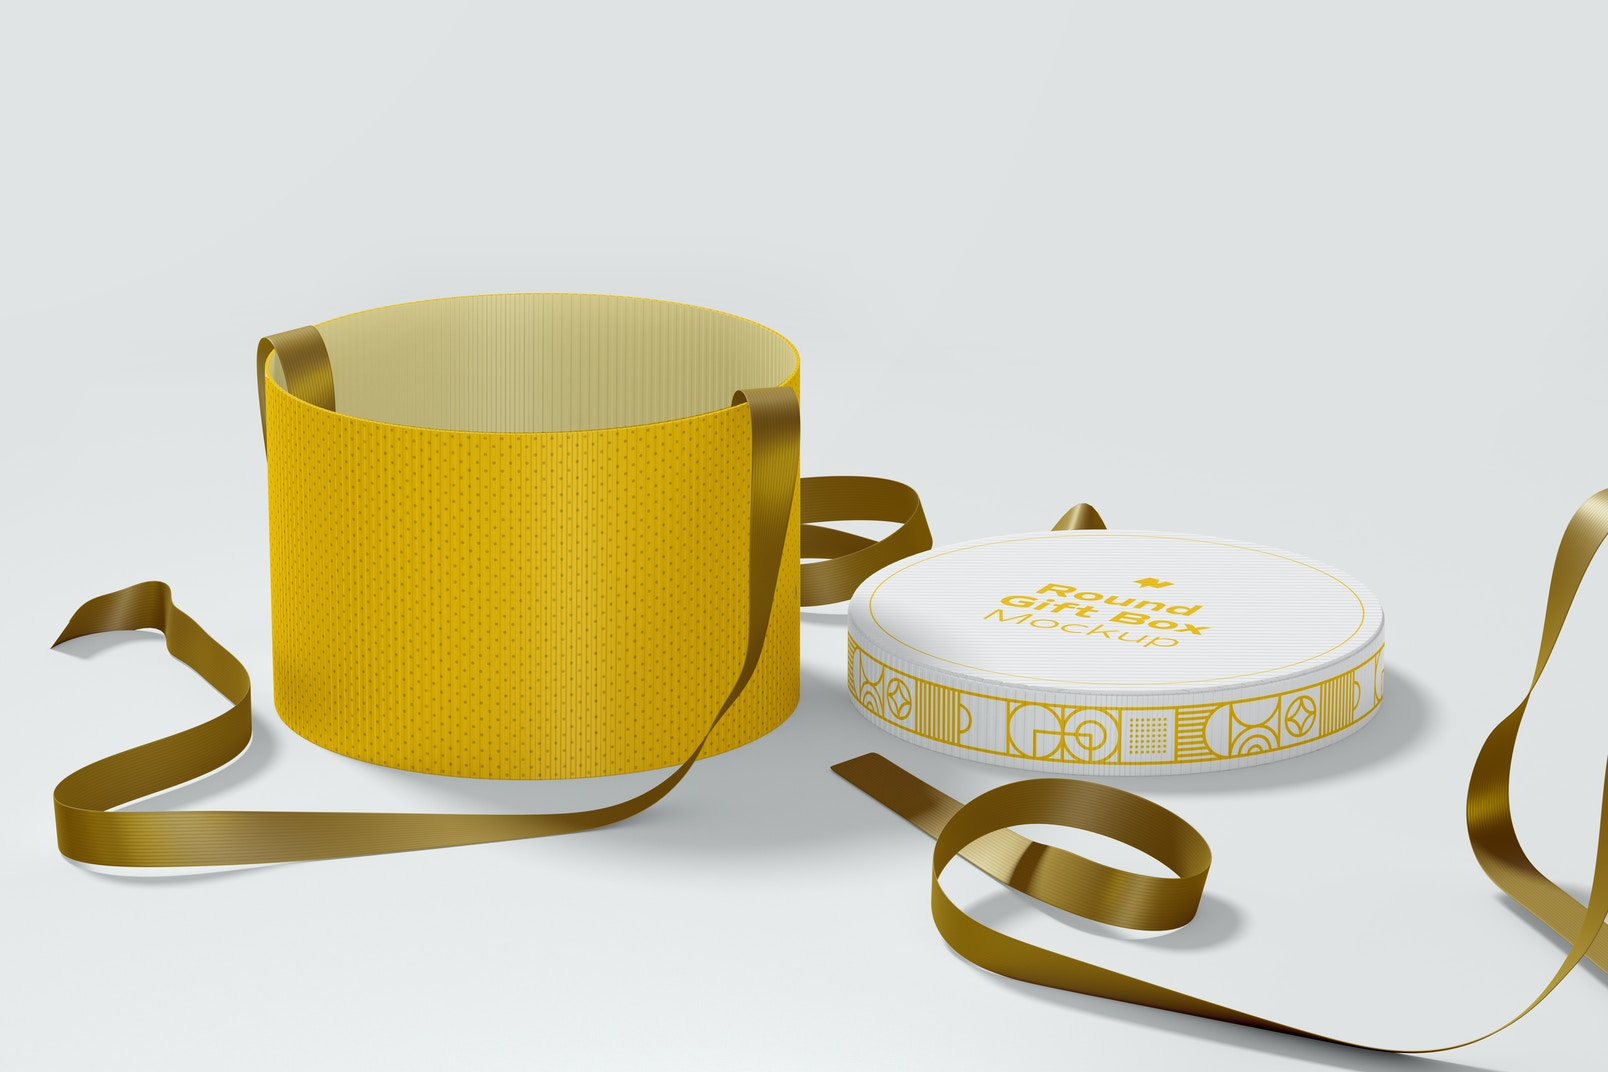 Round Gift Box with Ribbon Mockup, Front View